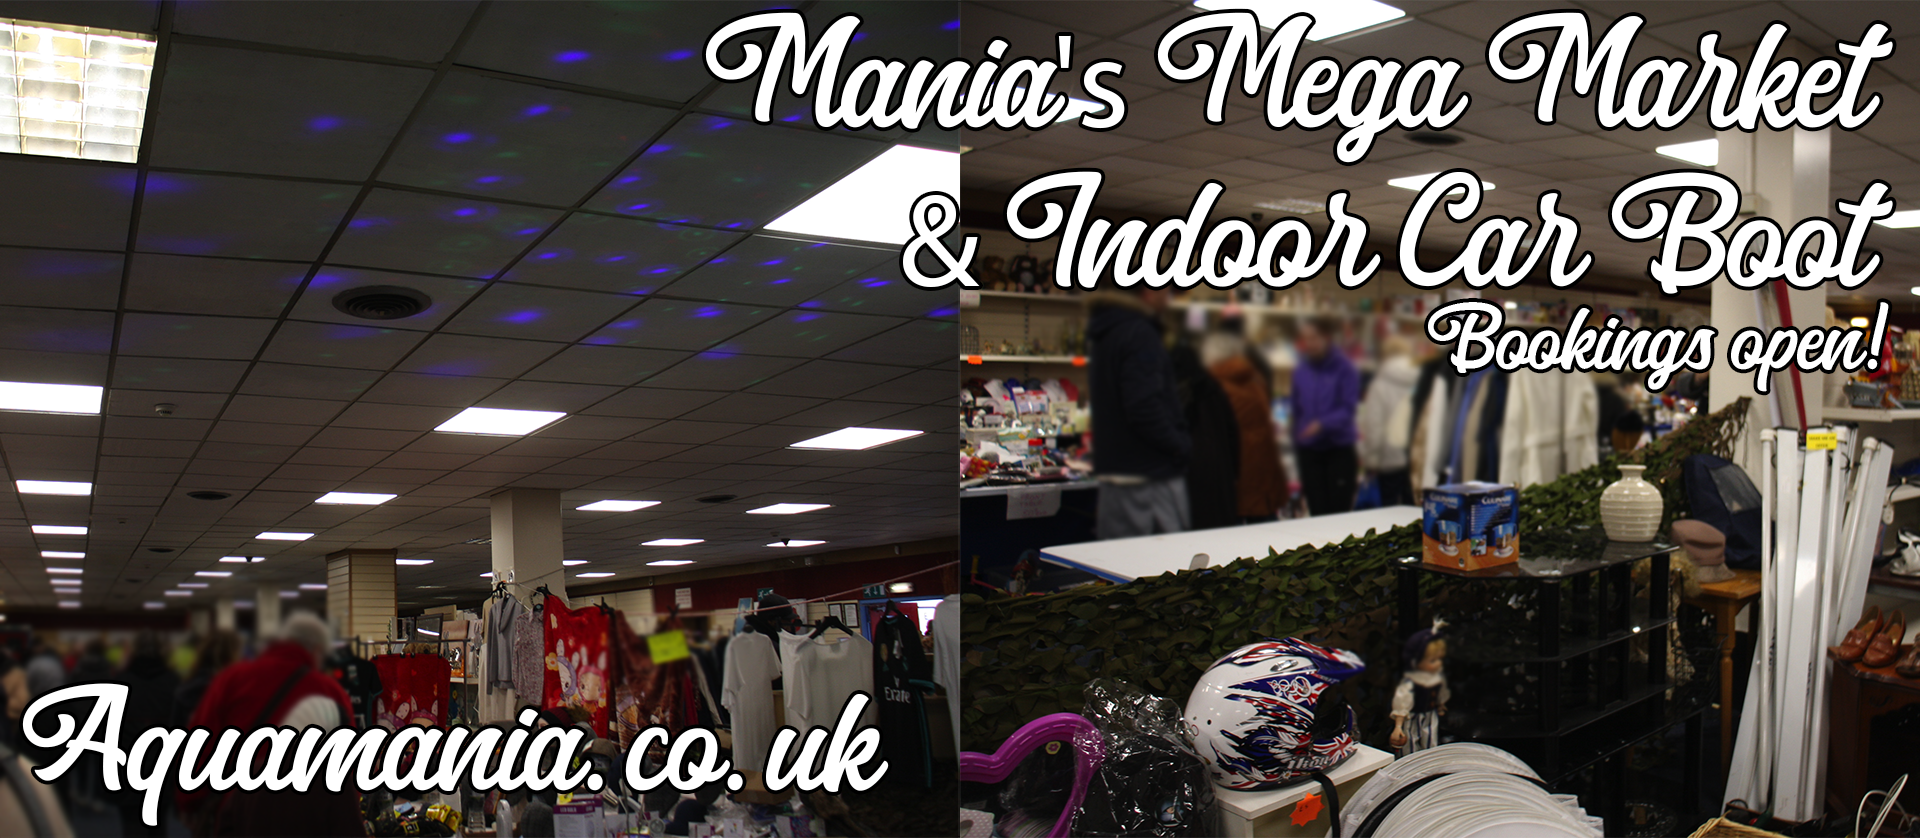 Mania''s mega market indoor car boot sale and market place. The images show a few of the days from March 8th, early morning. Very busy!